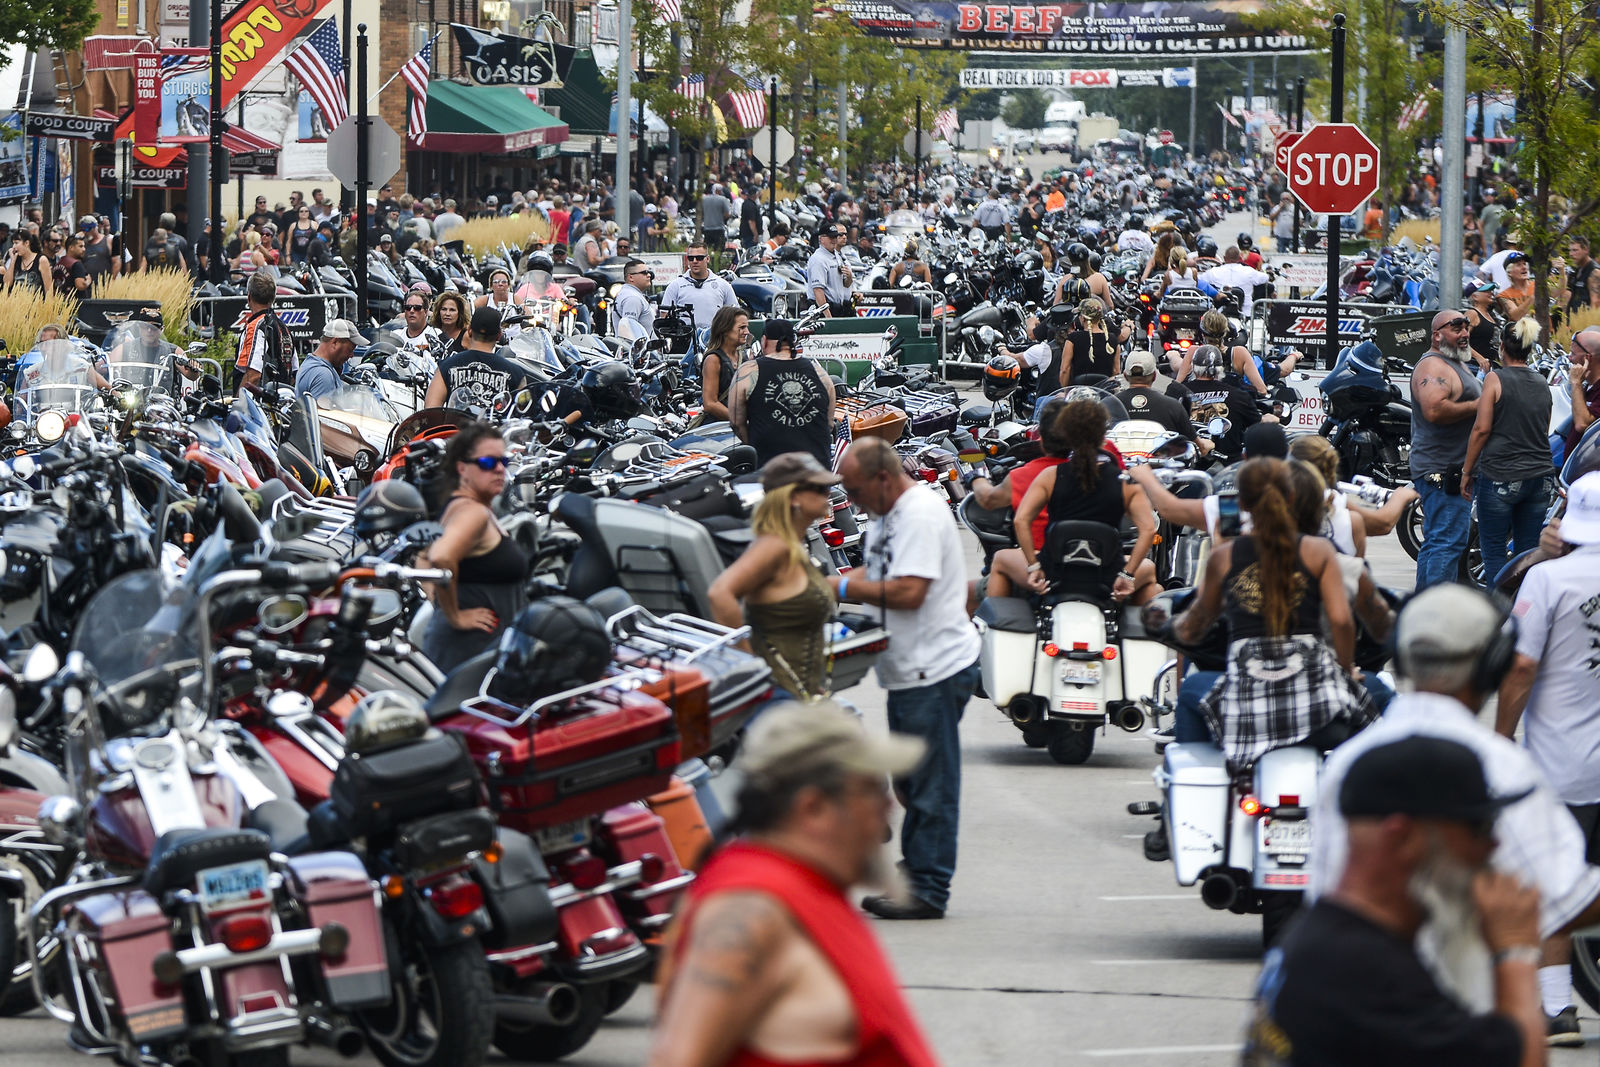 Motorcycle Rally In Sturgis Draws Thousands Of Largely